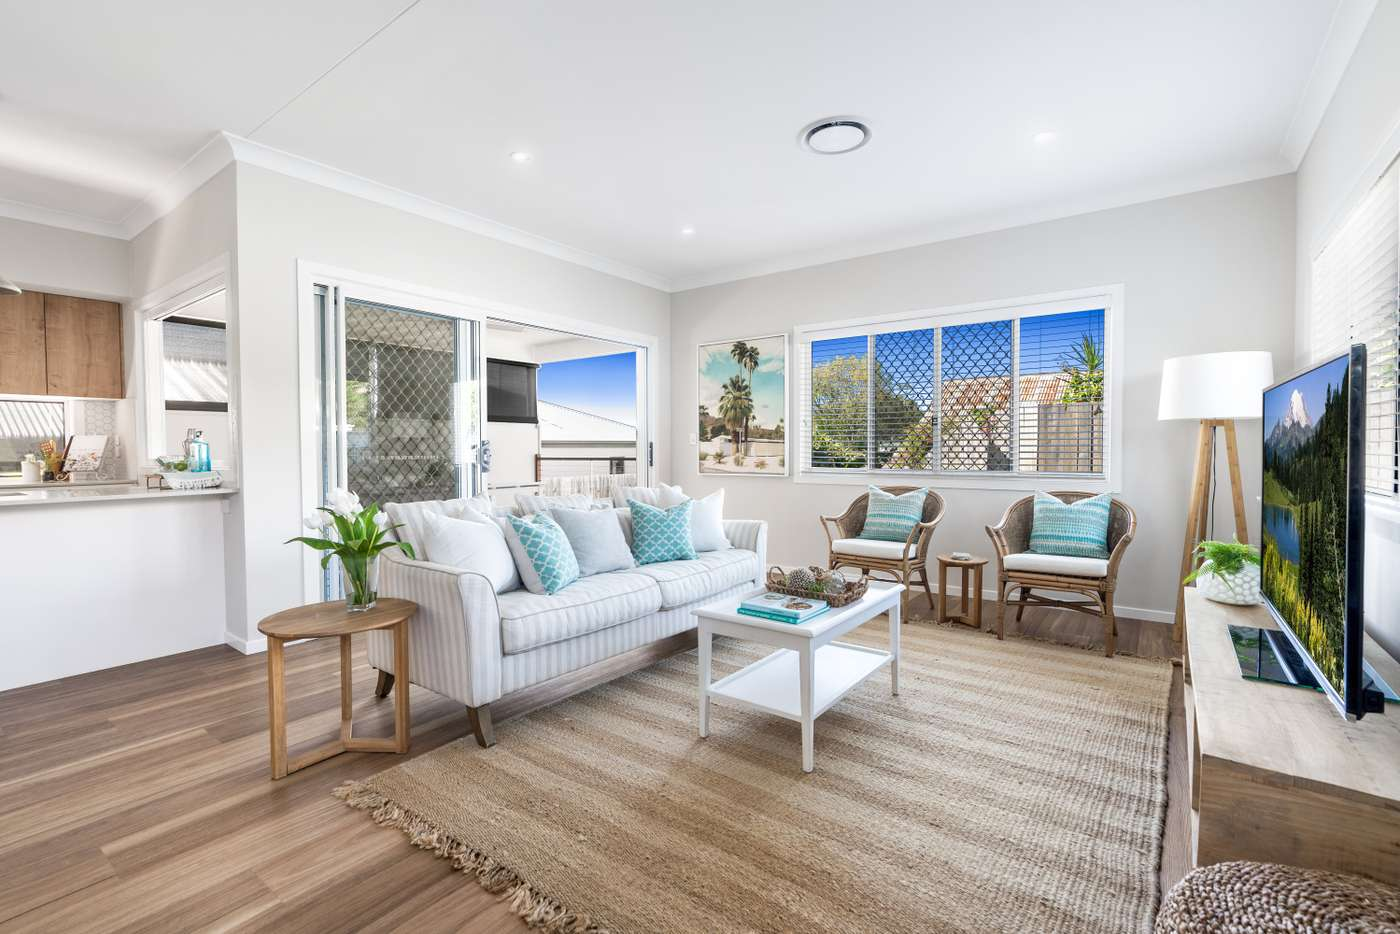 Fifth view of Homely house listing, 3 Glading Street, Manly West QLD 4179